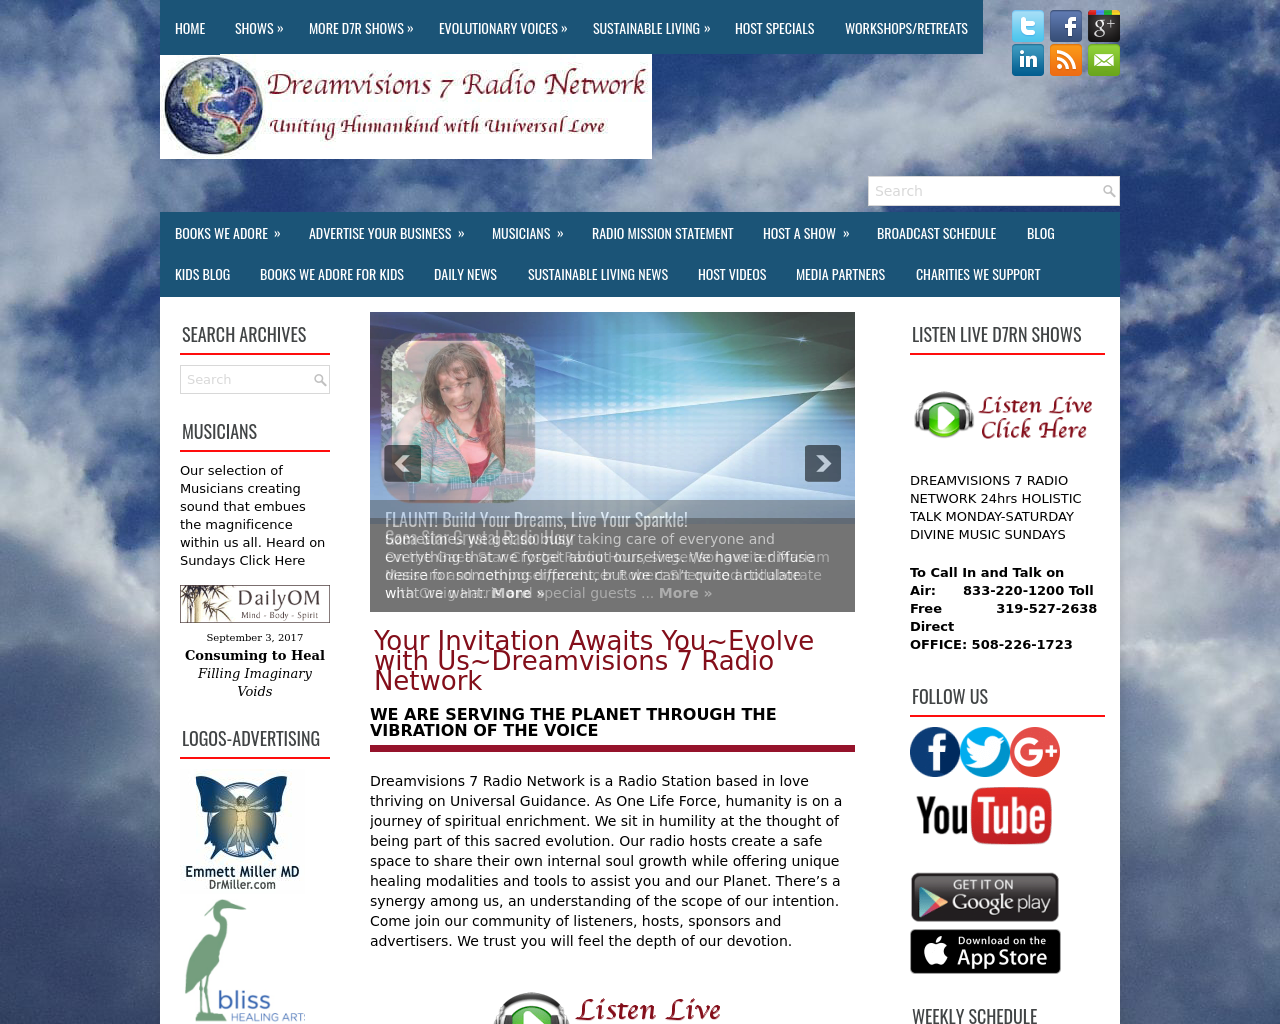 Dreamvisions-7-Radio-Network-Advertising-Reviews-Pricing